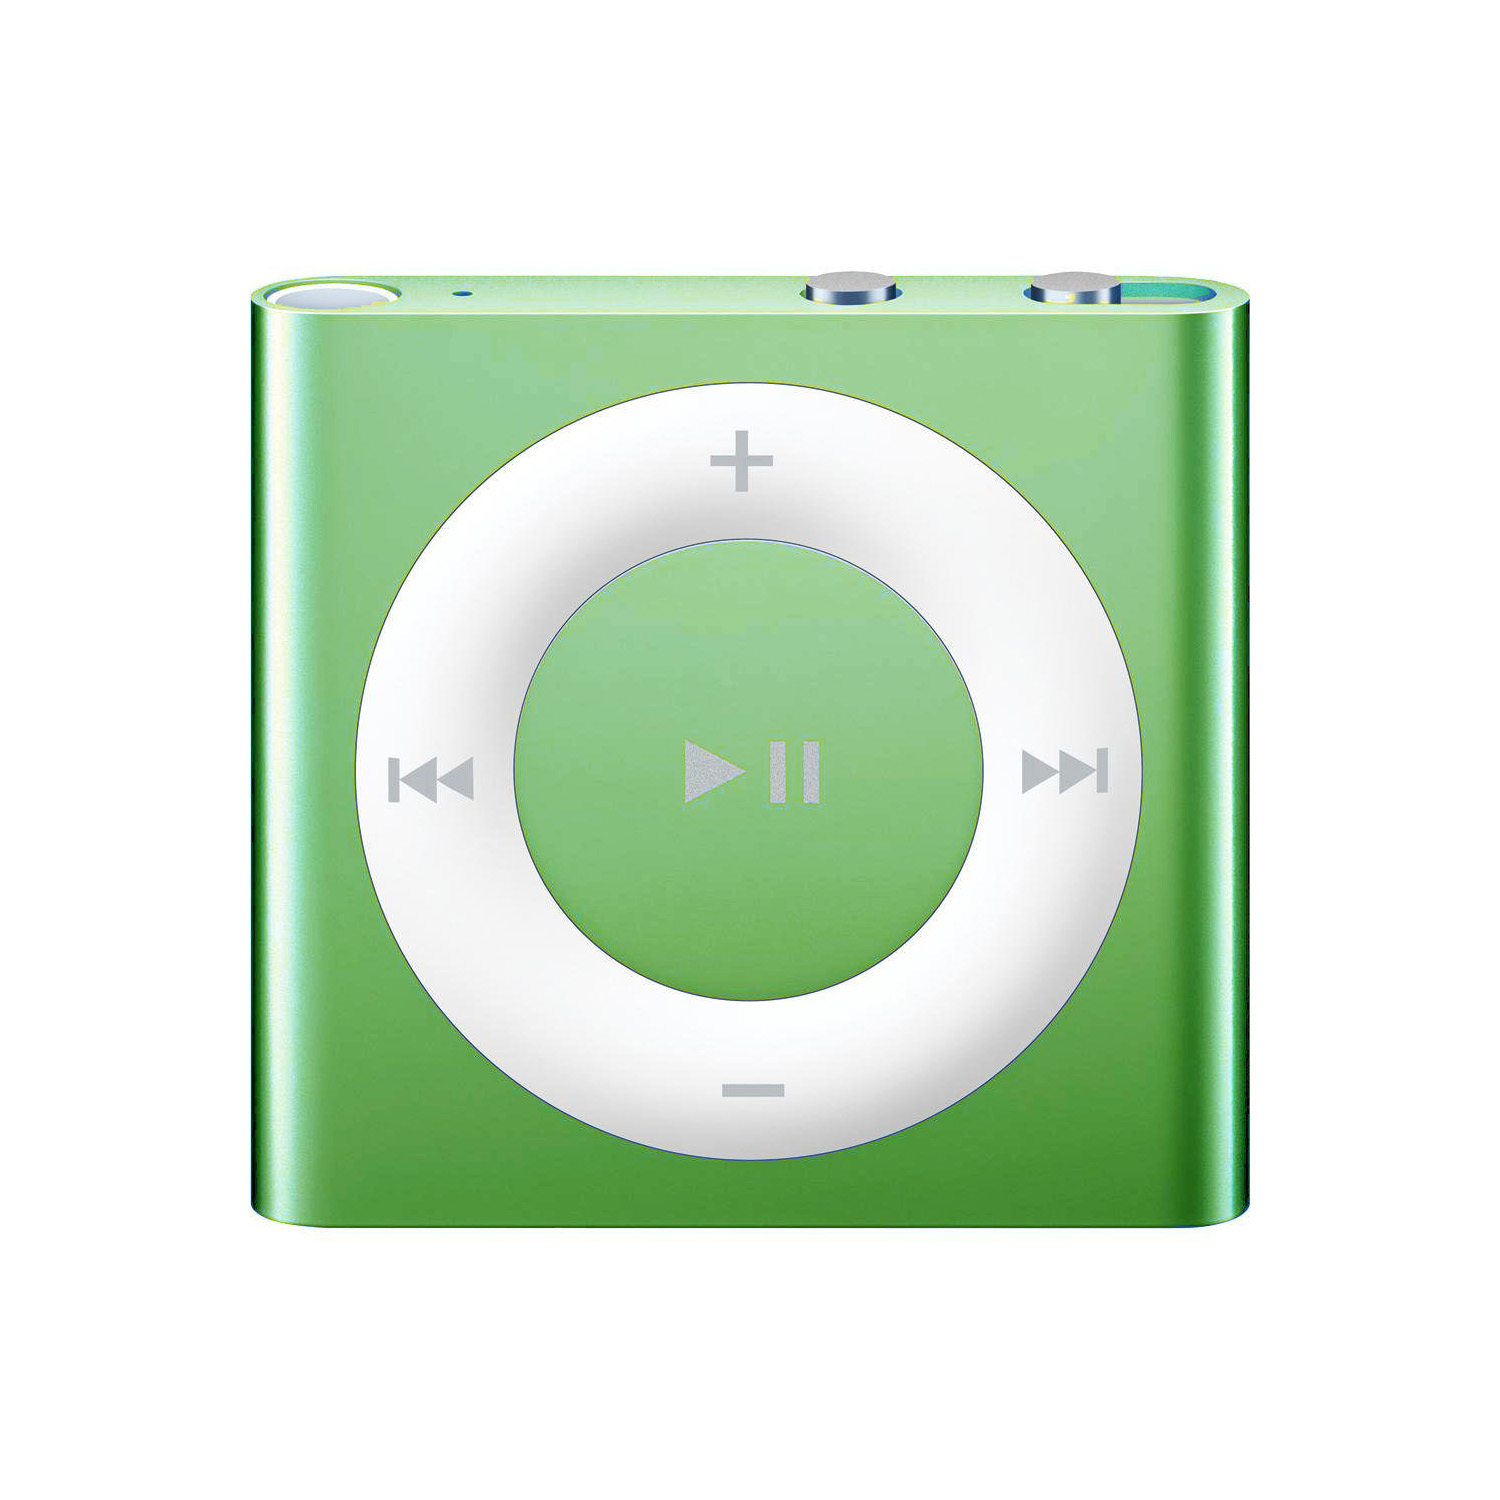 apple ipod shuffle 2gb 4th generation rechargeable itunes. Black Bedroom Furniture Sets. Home Design Ideas